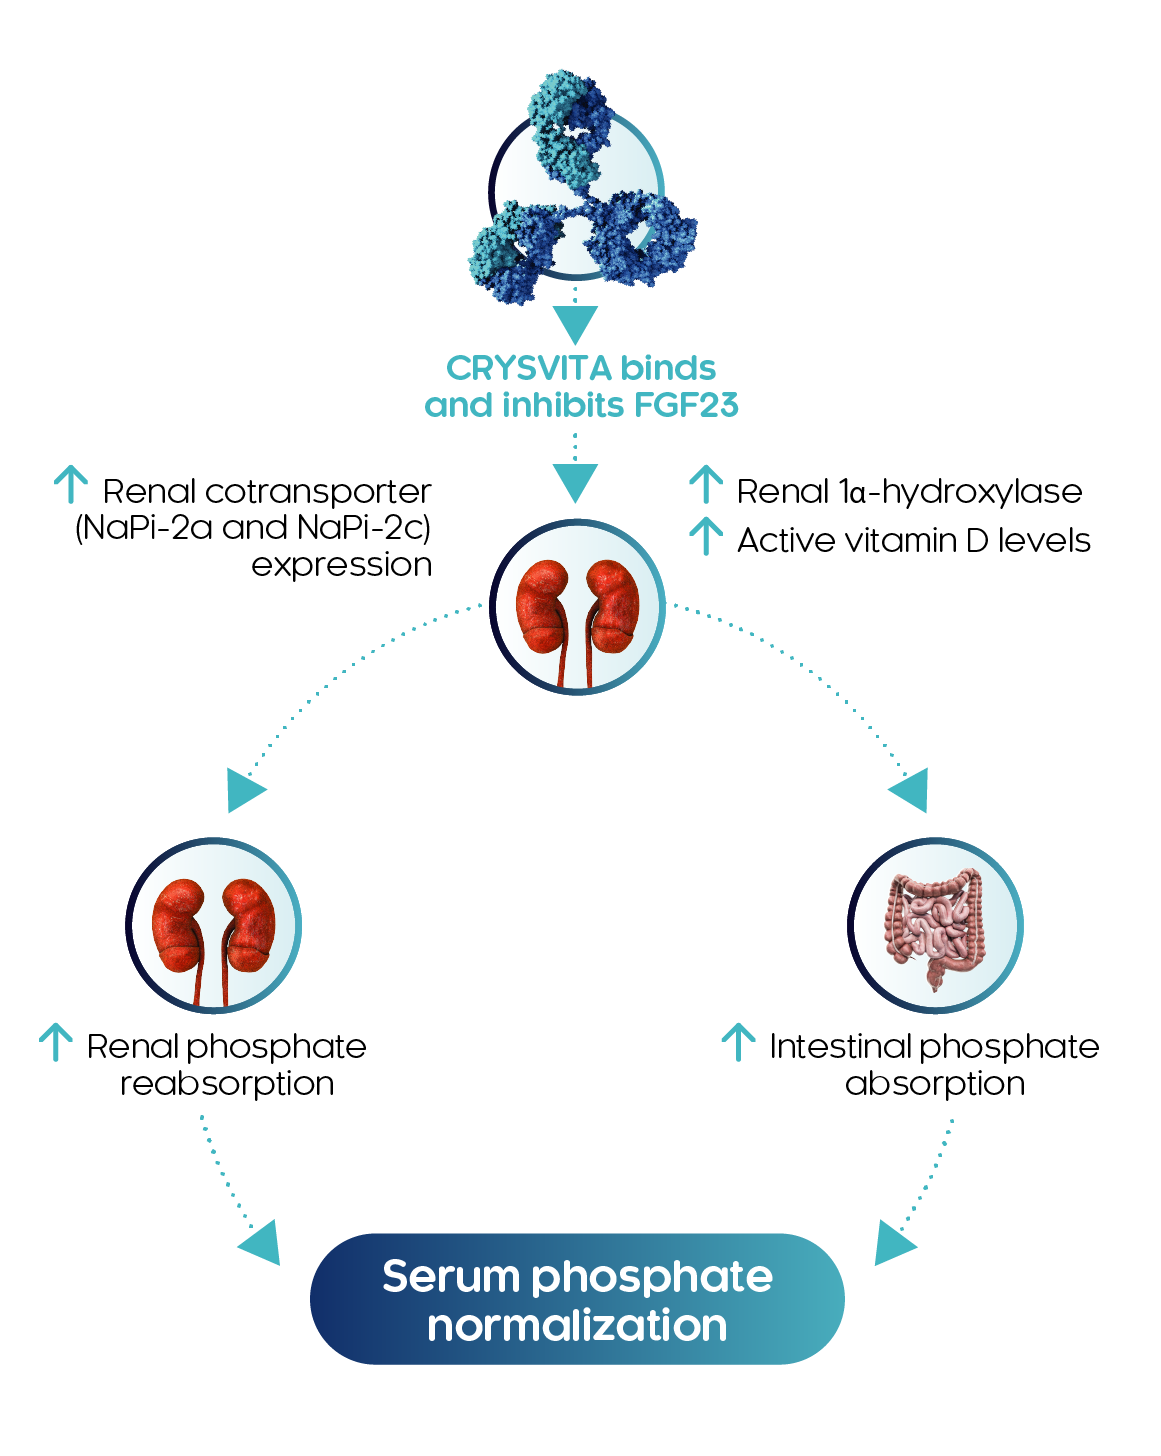 CRYSVITA leads to normalized serum phosphate levels.